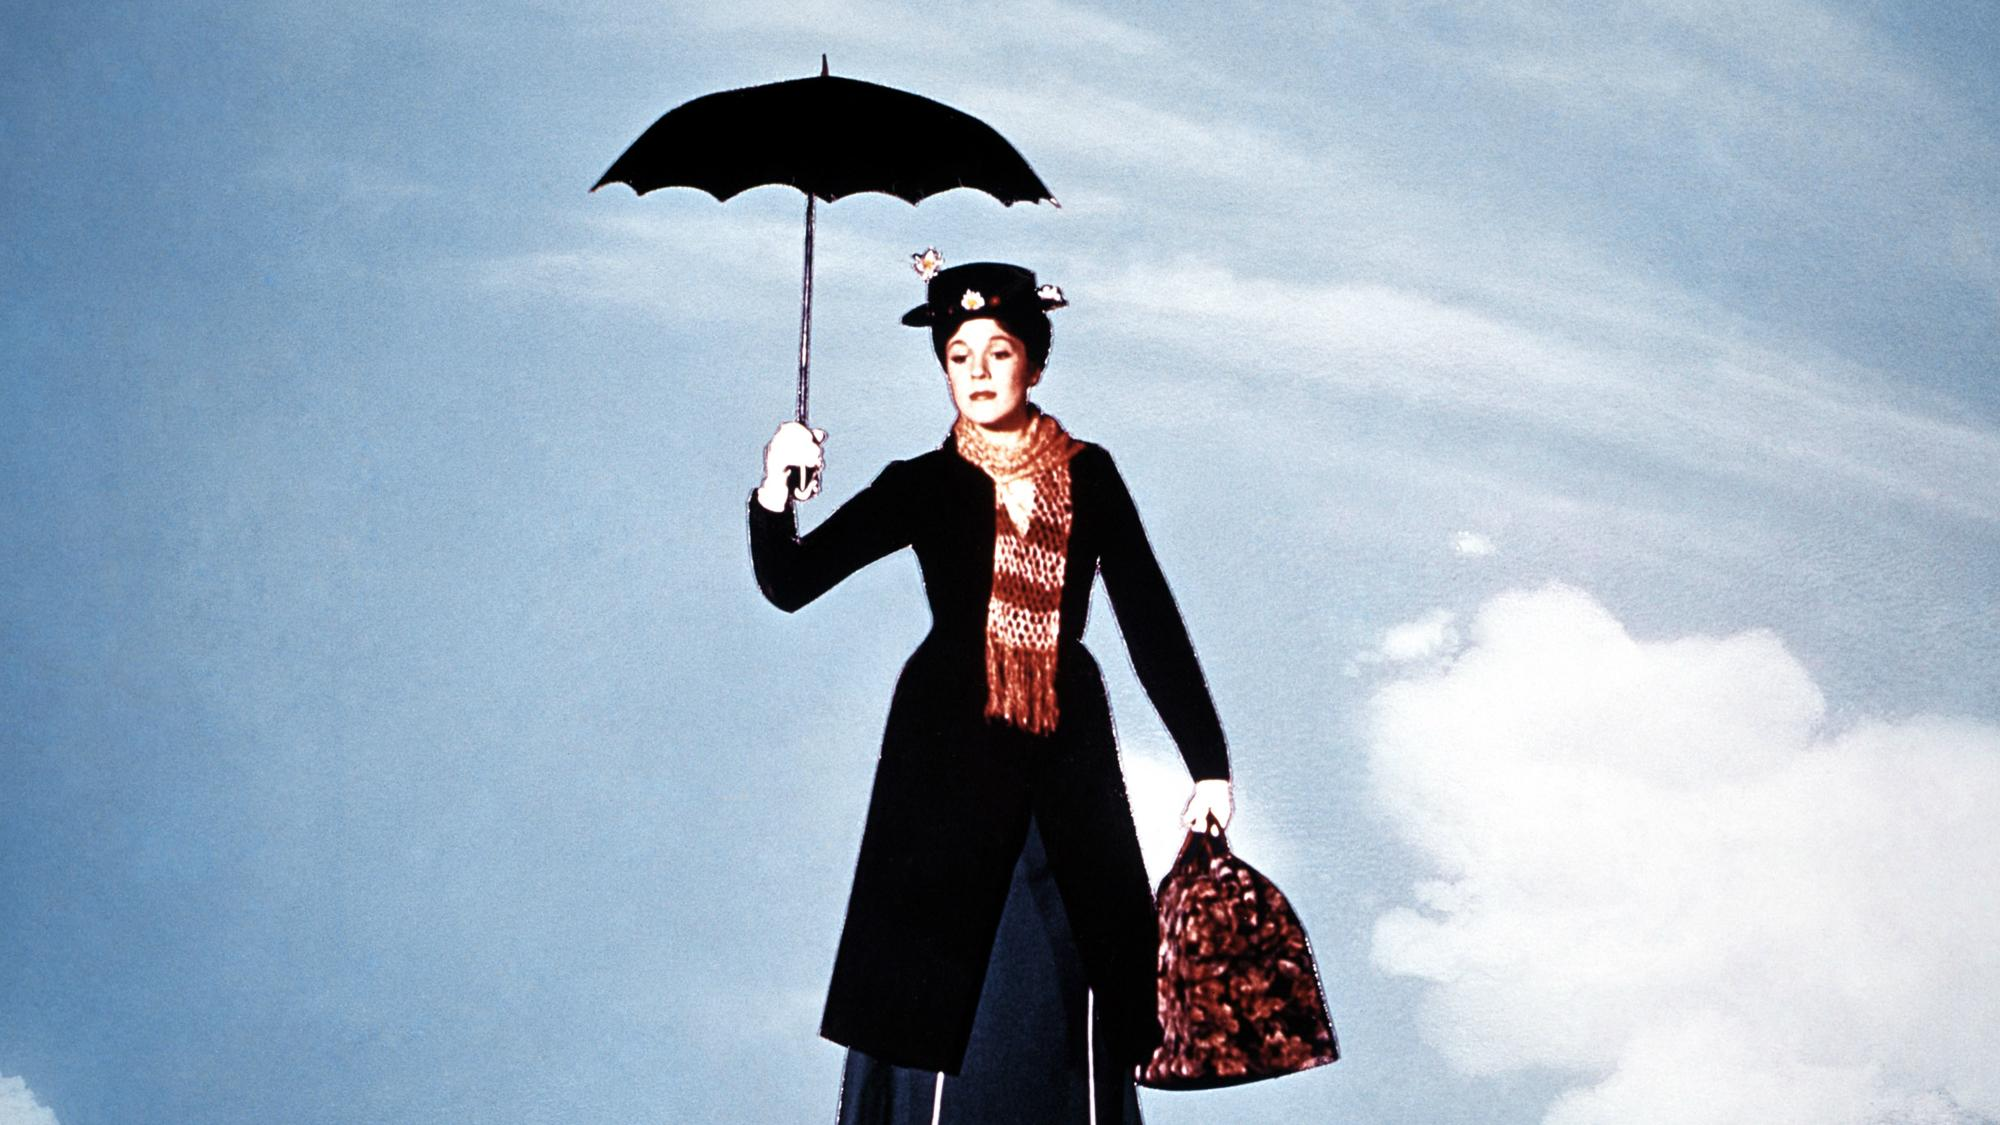 Mary Poppins Julie Andrews Reveals She Nearly Died Filming Iconic Umbrella Scene The Independent The Independent